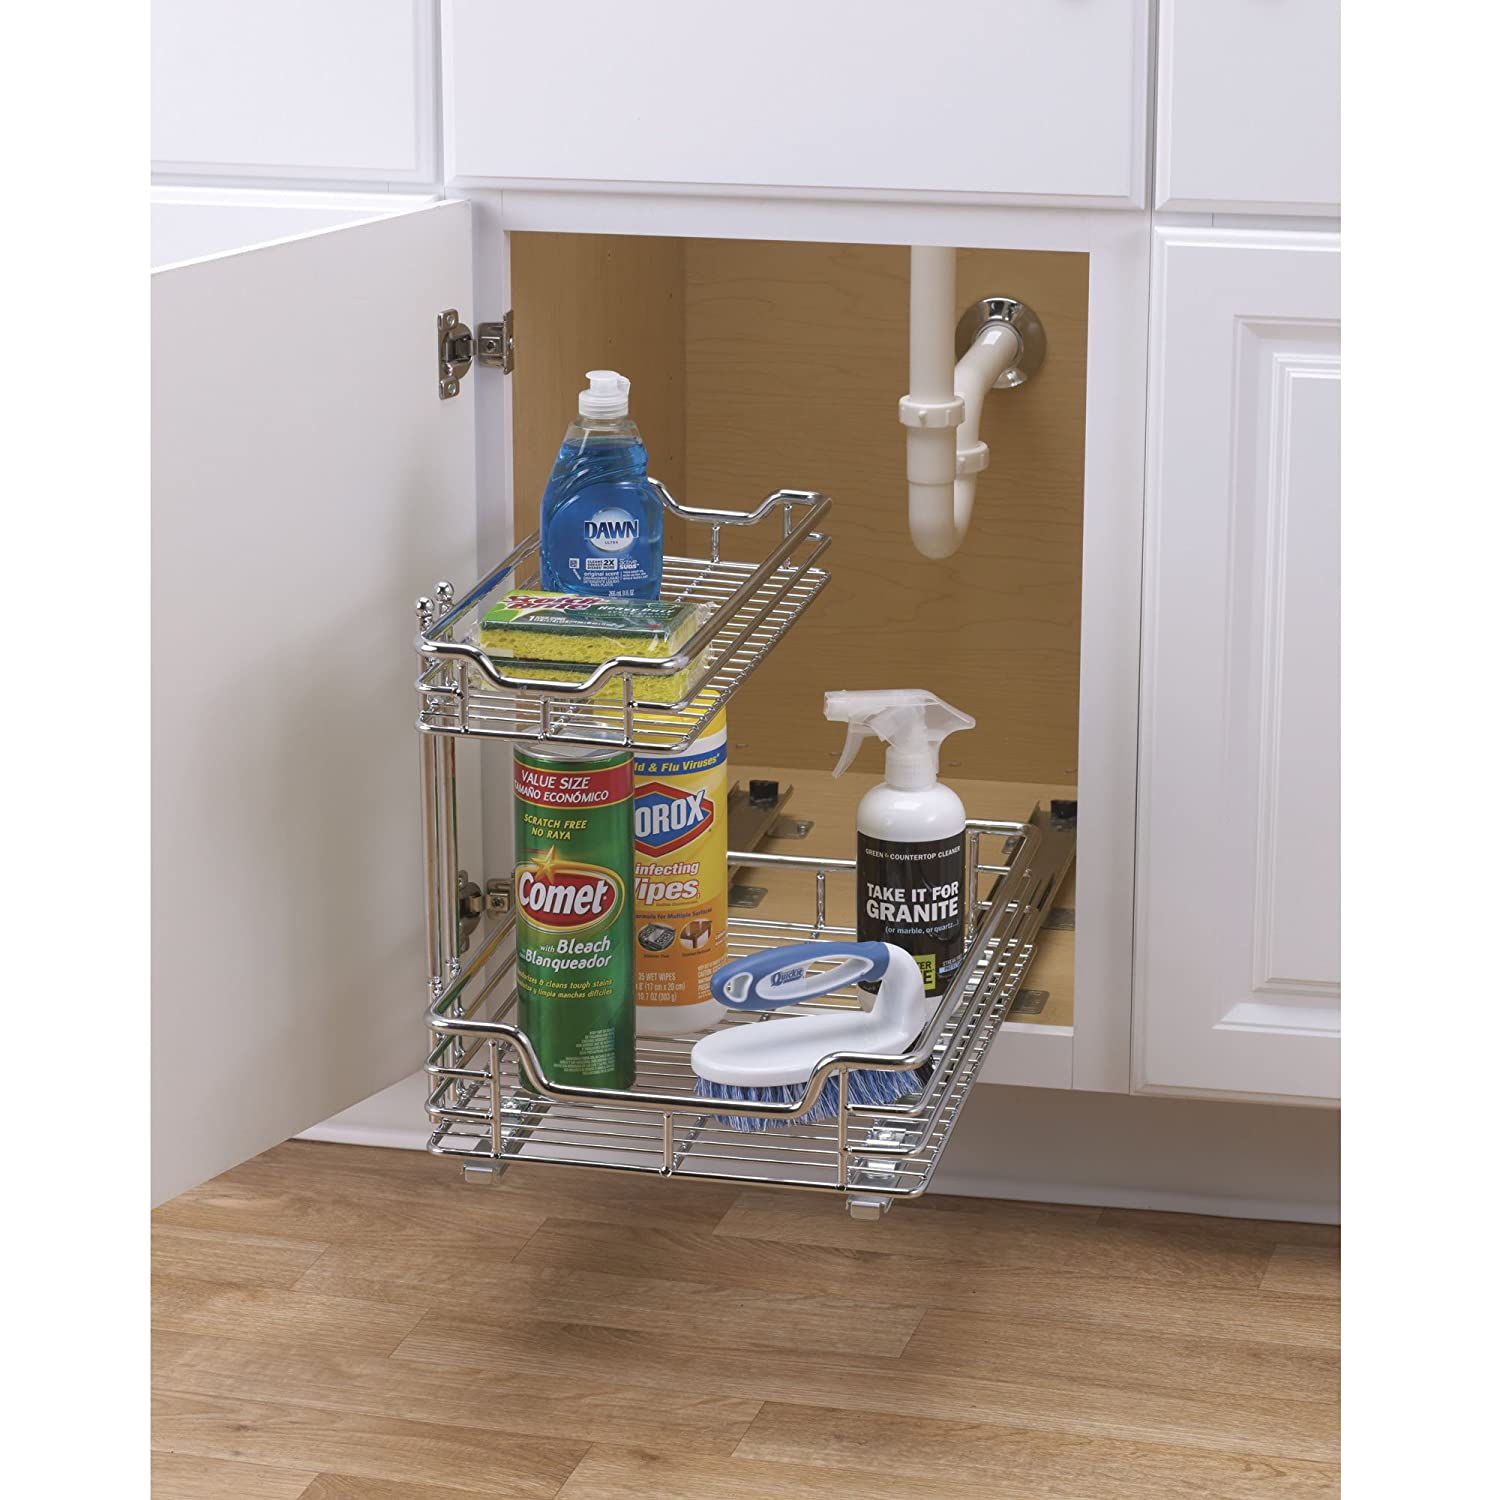 ordinary Kitchen Sink Organizers Accessories #9: Amazon.com: Household Essentials C26512-1 Glidez Undersink Sliding Organizer  - Pull Out Cabinet Shelf - Chrome - 12.5 Inches Wide: Home u0026 Kitchen